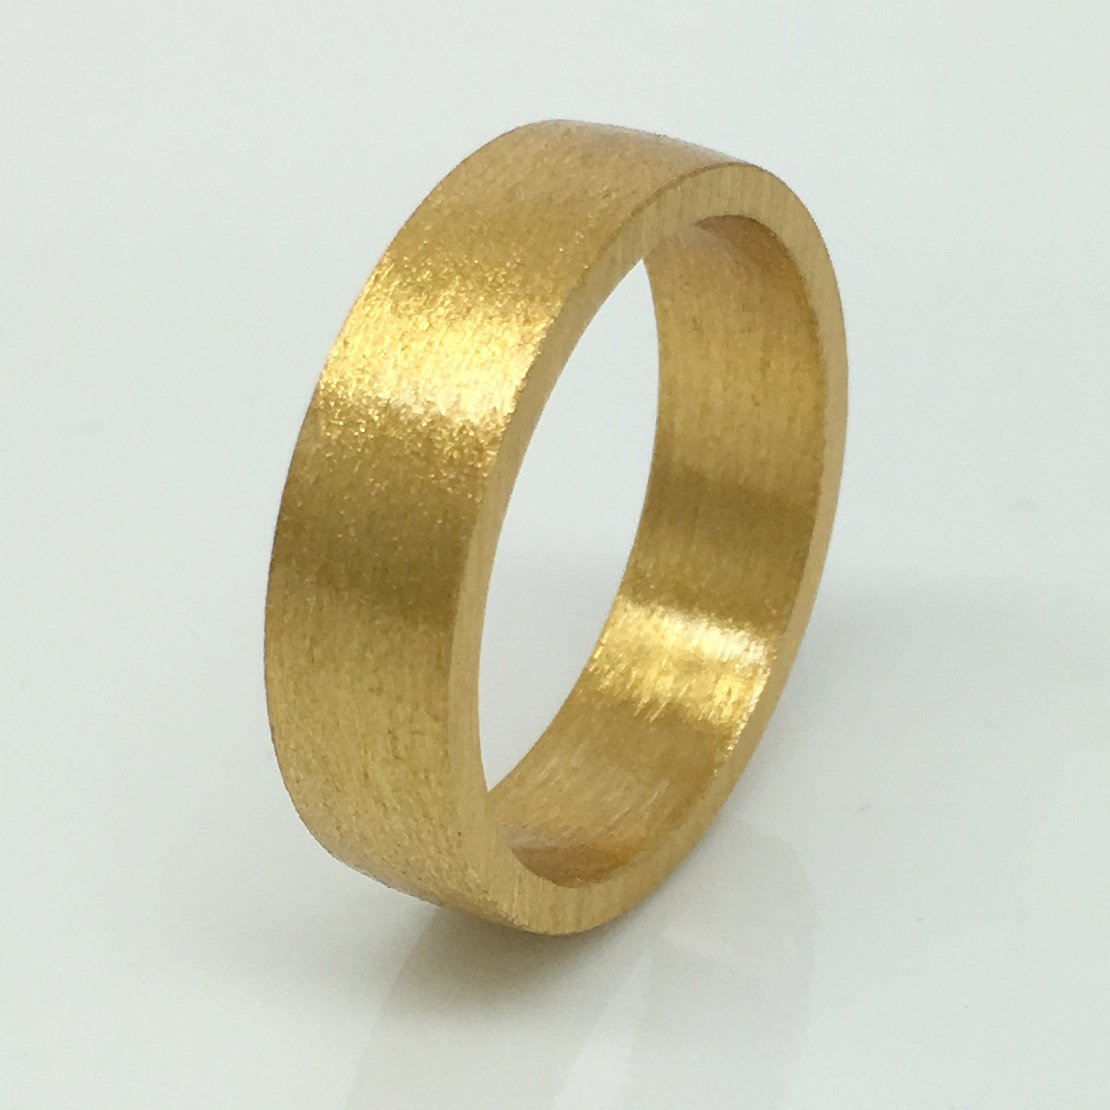 Men's wedding band, 6mm yellow gold plated, sterling silver